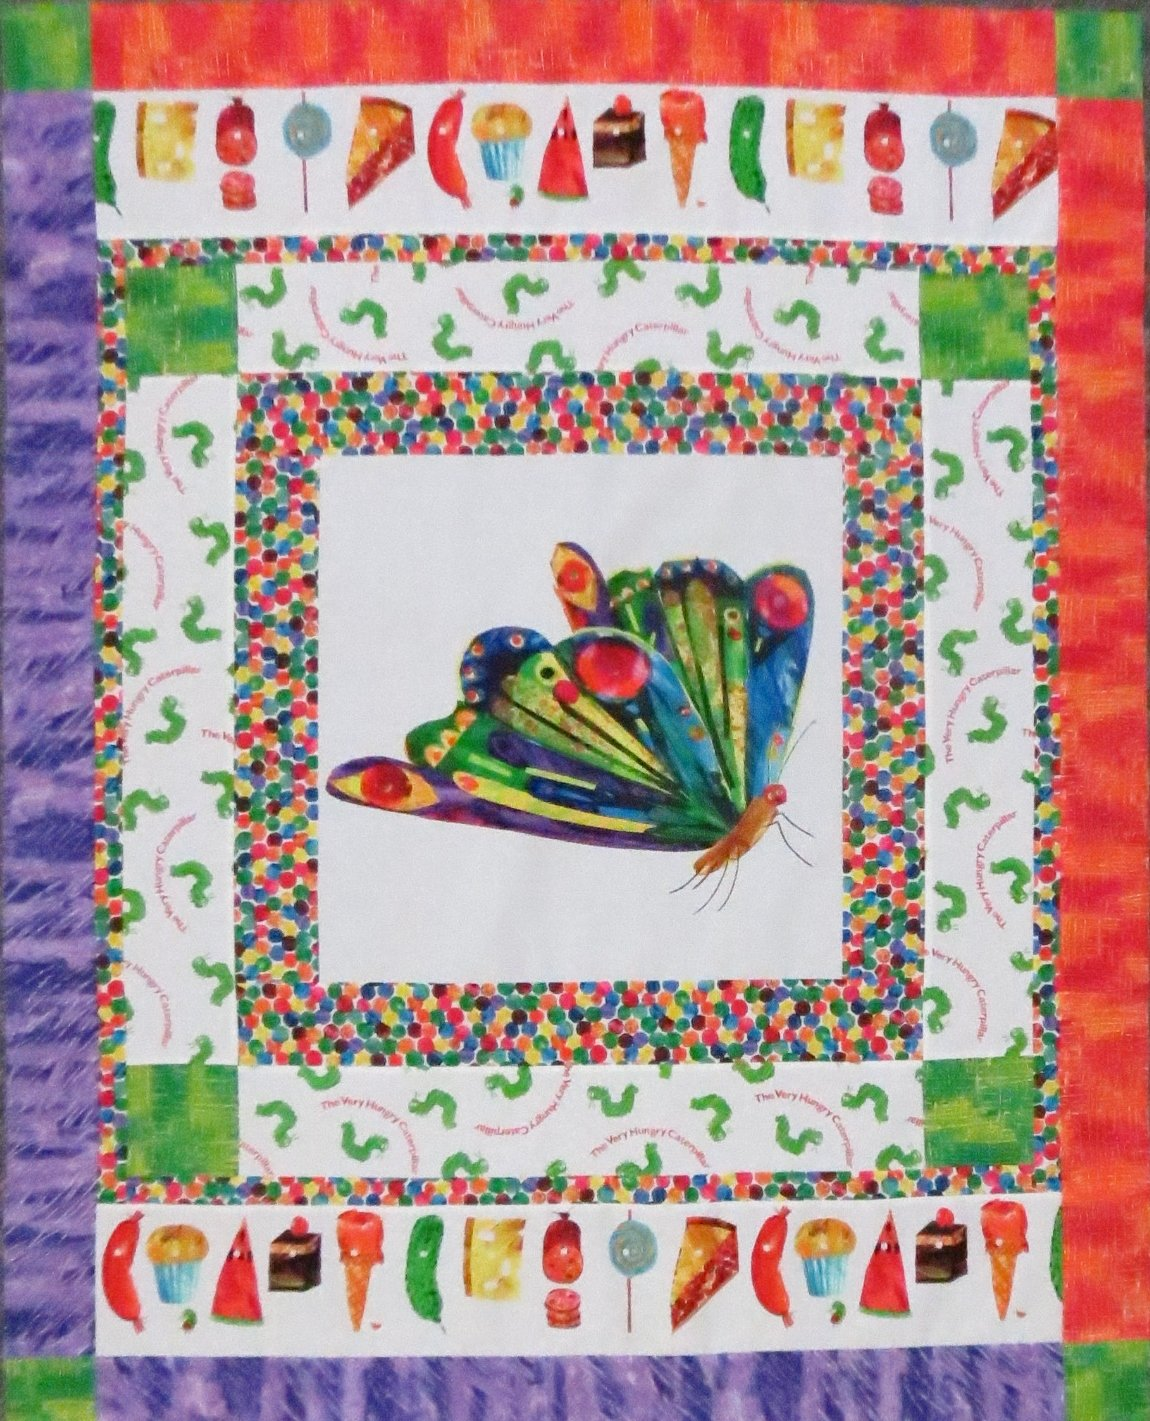 The Very Colorful Caterpillar (or Butterfly) Quilt Kit - Orange / Purple Border